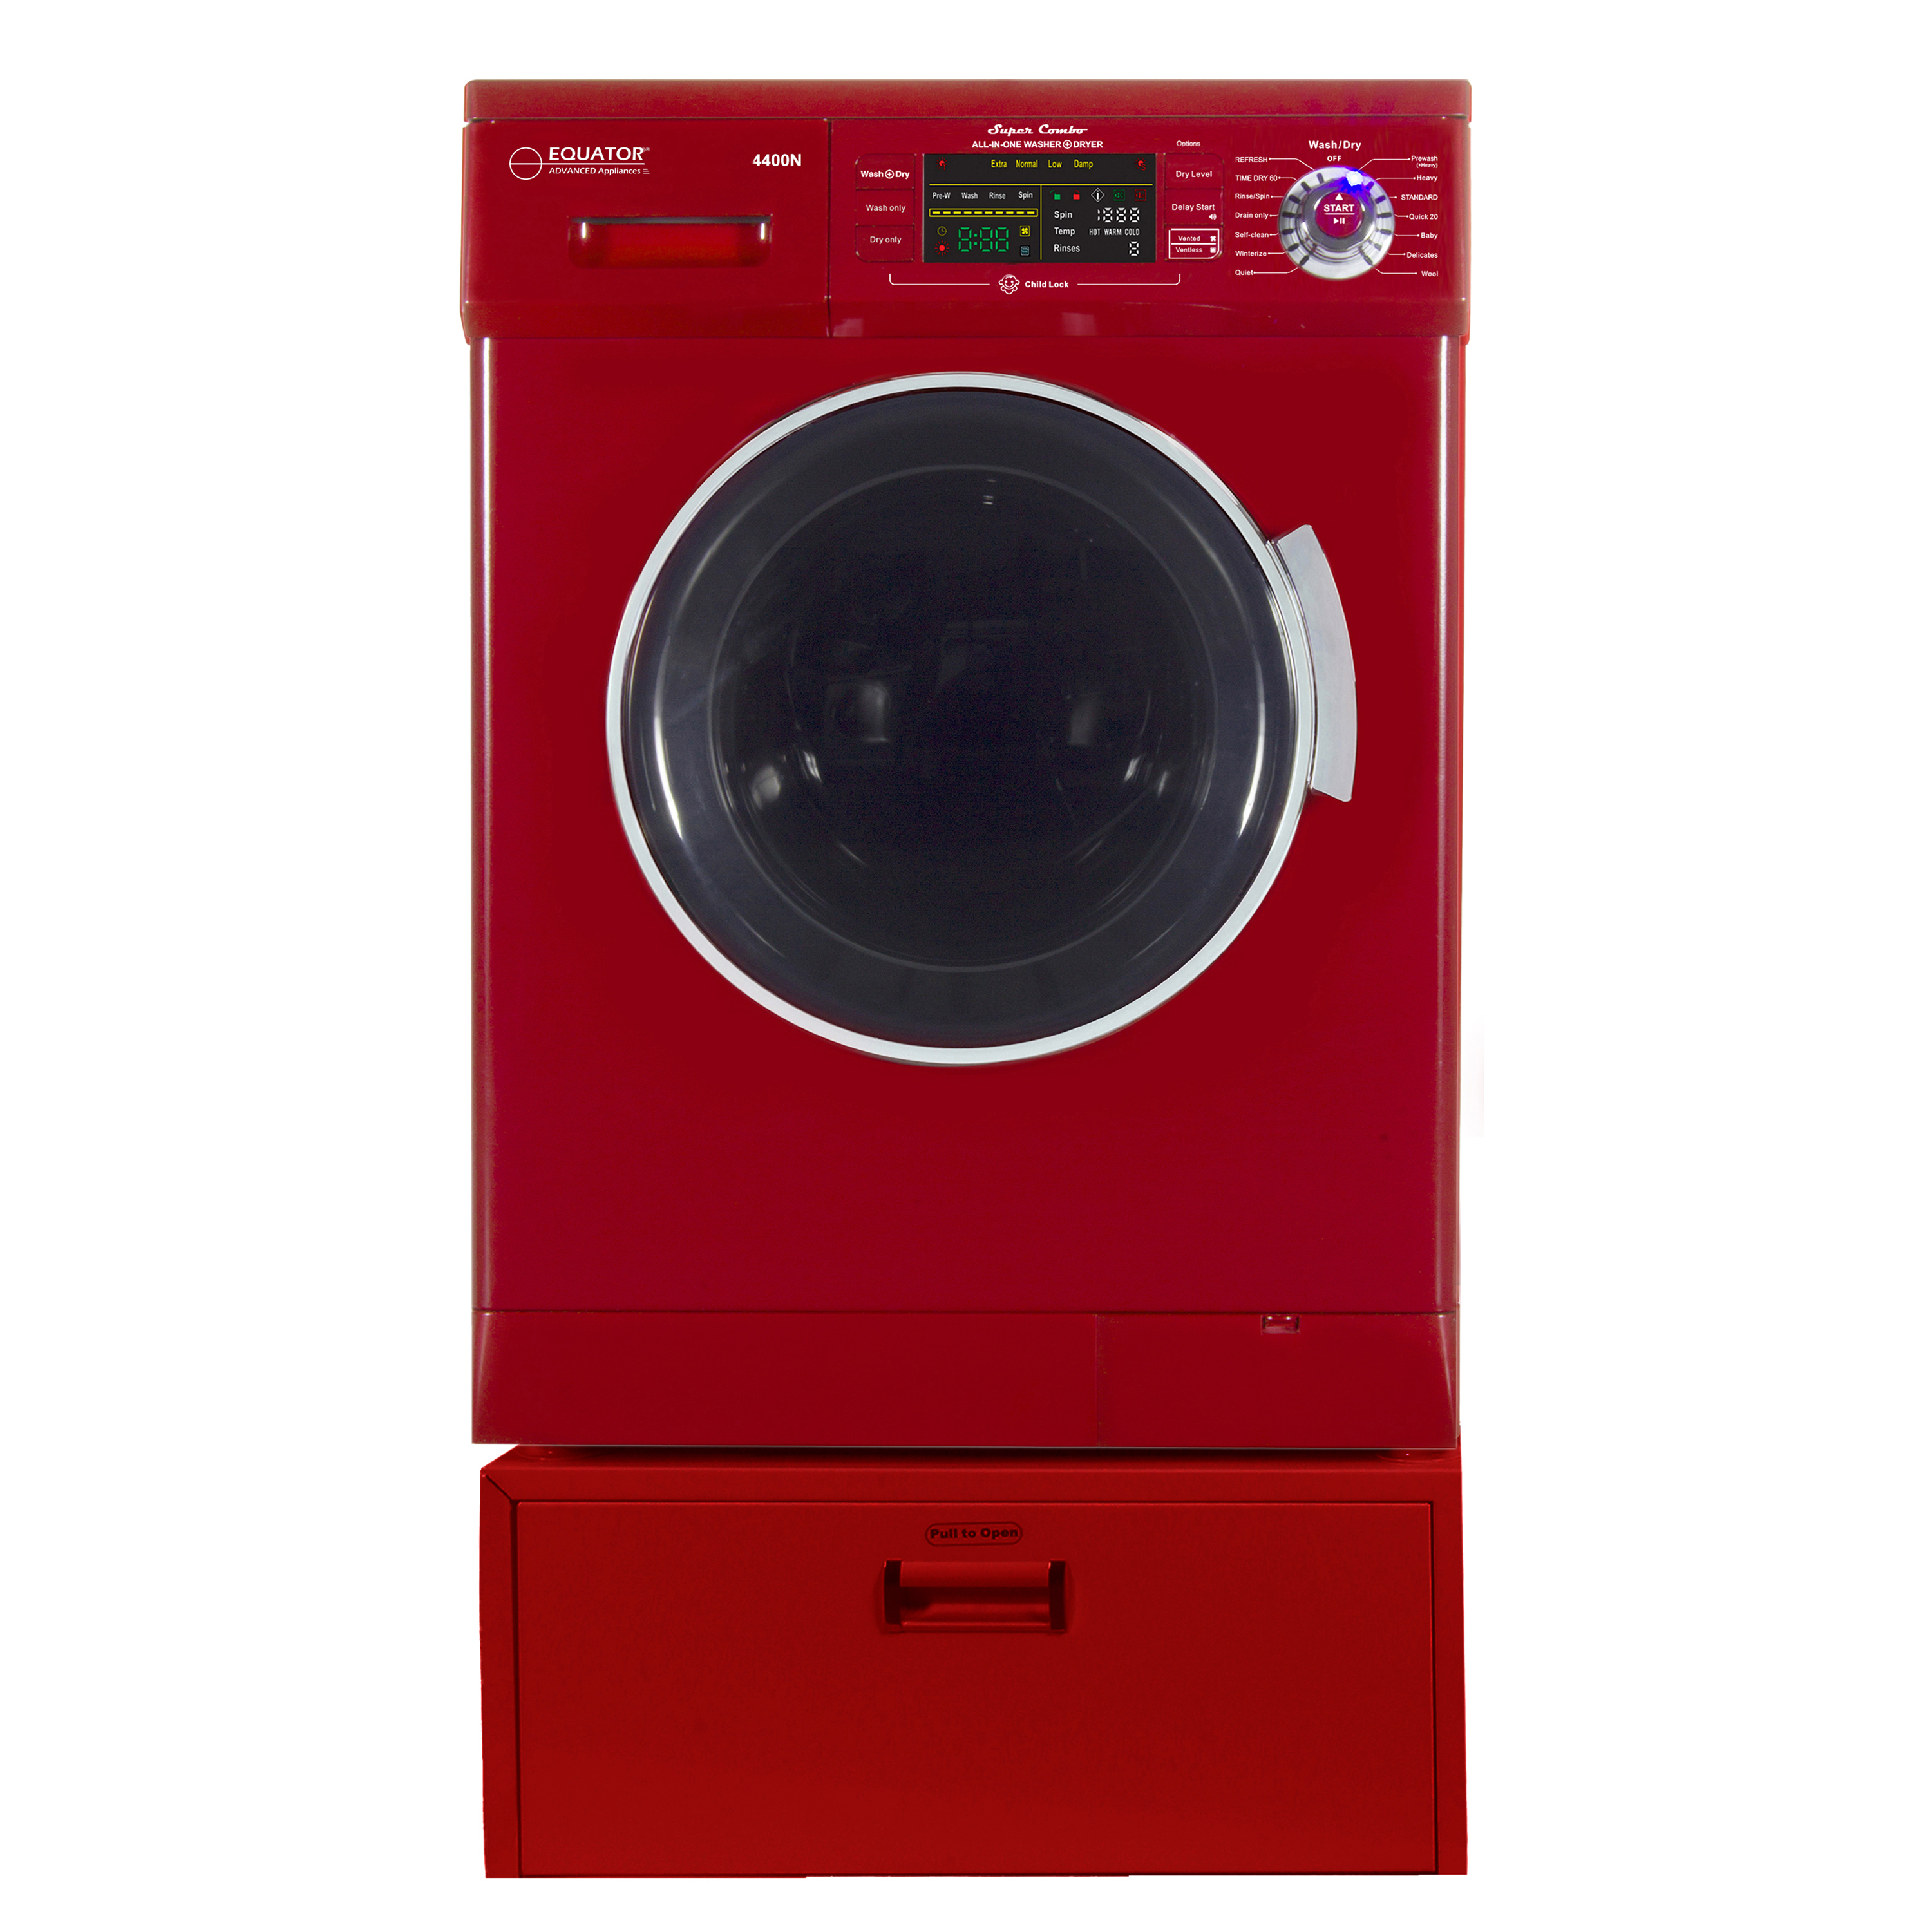 Equator EZ 4400 N Merlot All-in-one New Compact Combo Washer Dryer with Pedestal Storage Drawer